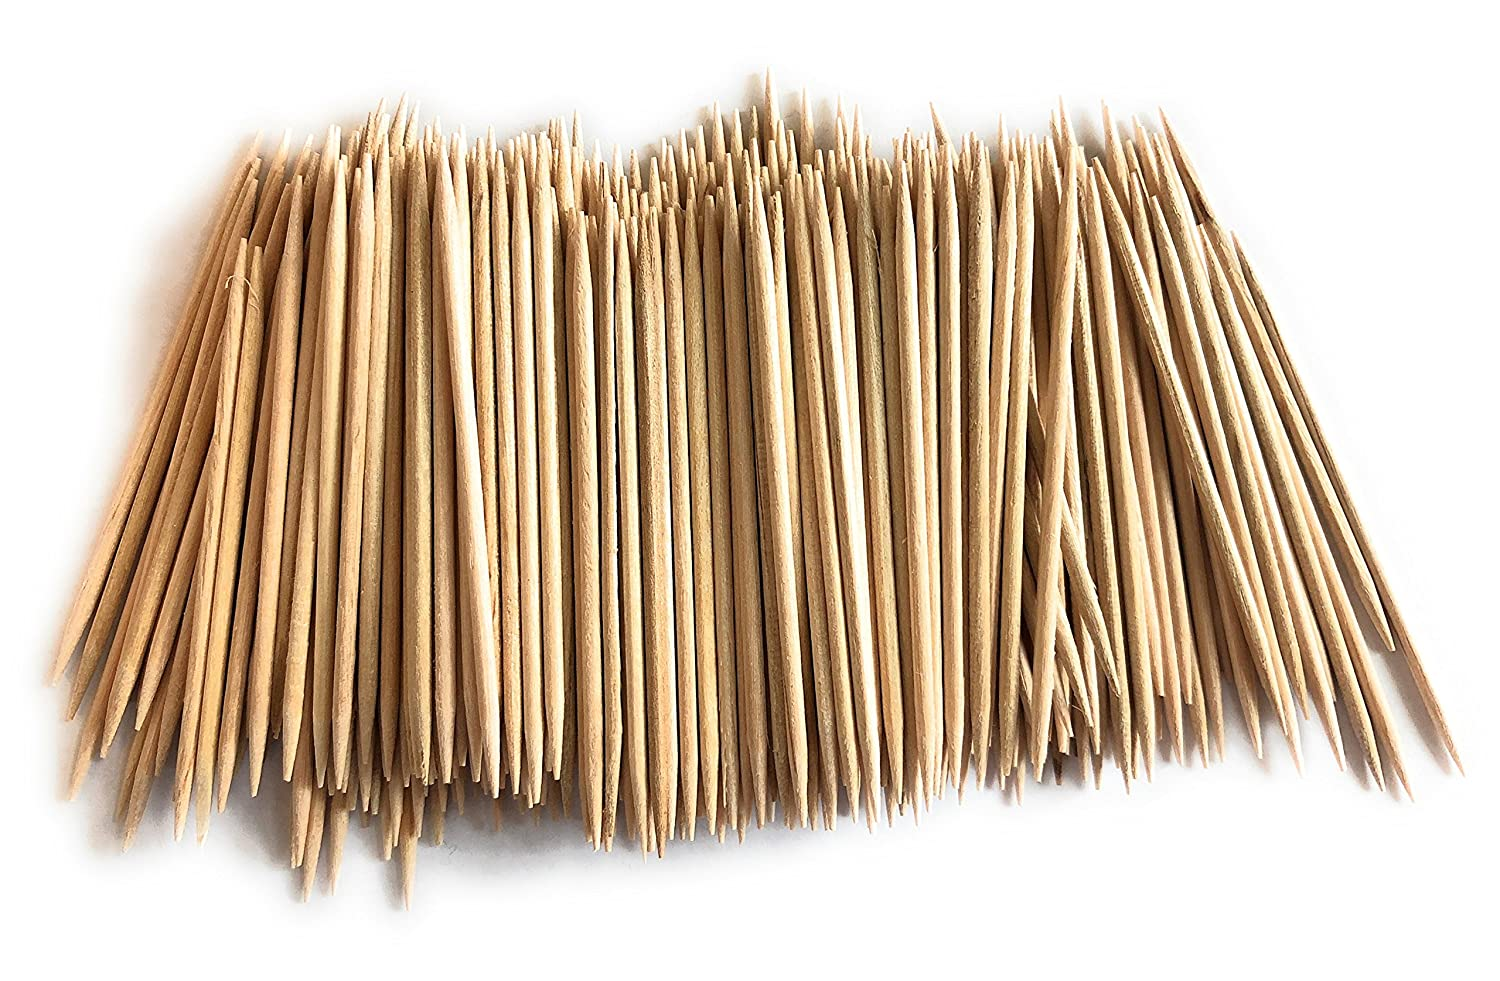 4 Boxes of 800 Count 3200 QTY Disposable 100/% Natural White Birch Wooden Toothpicks Rounded with Sharp Pointed Ends,